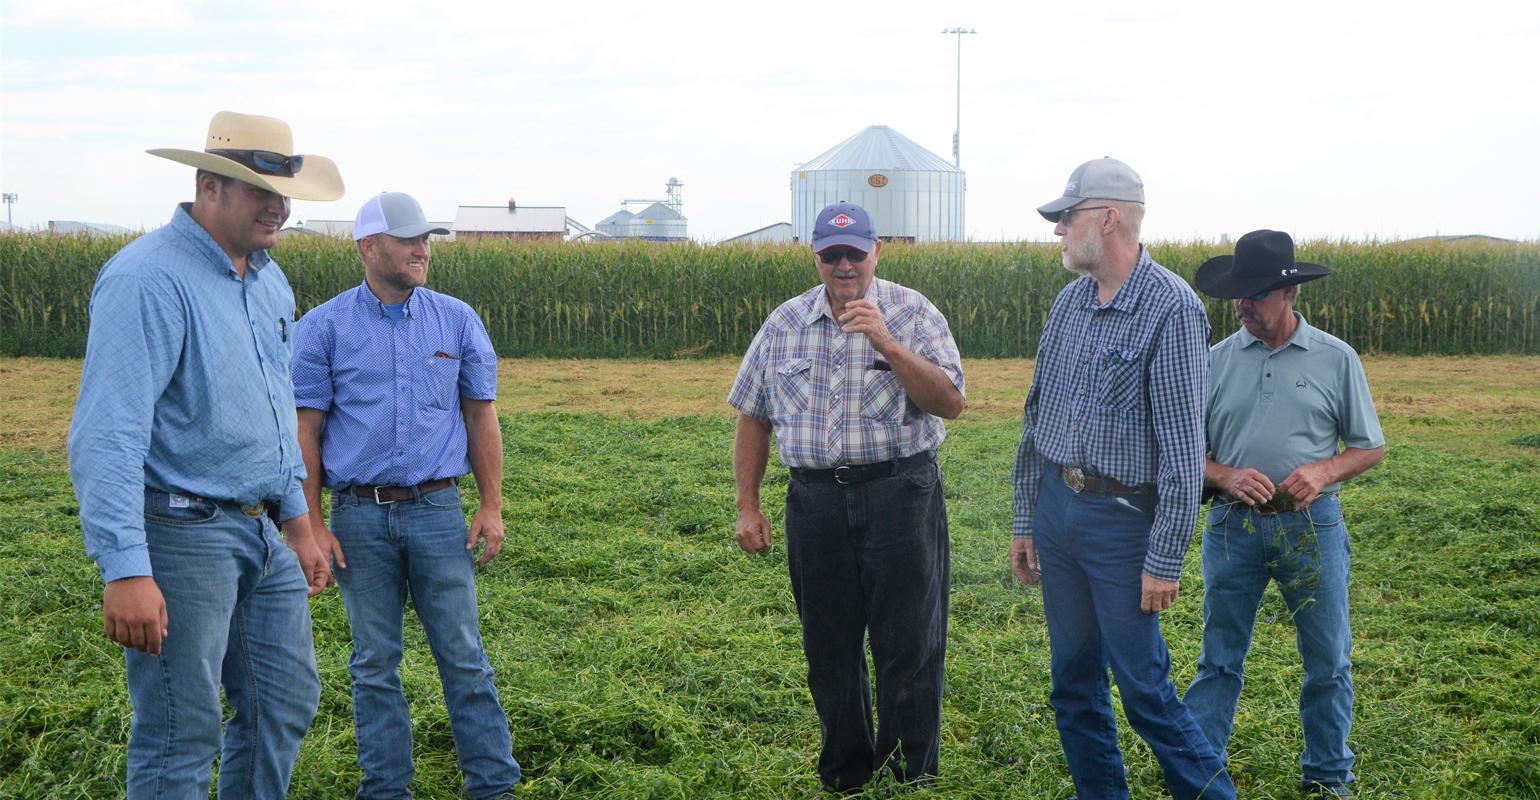 Five Nebraska producers came to the Husker Harvest Days site in to see latest hay equipment and cattle chutes in action as part of the filming of the Farm Progress Virtual Experience.